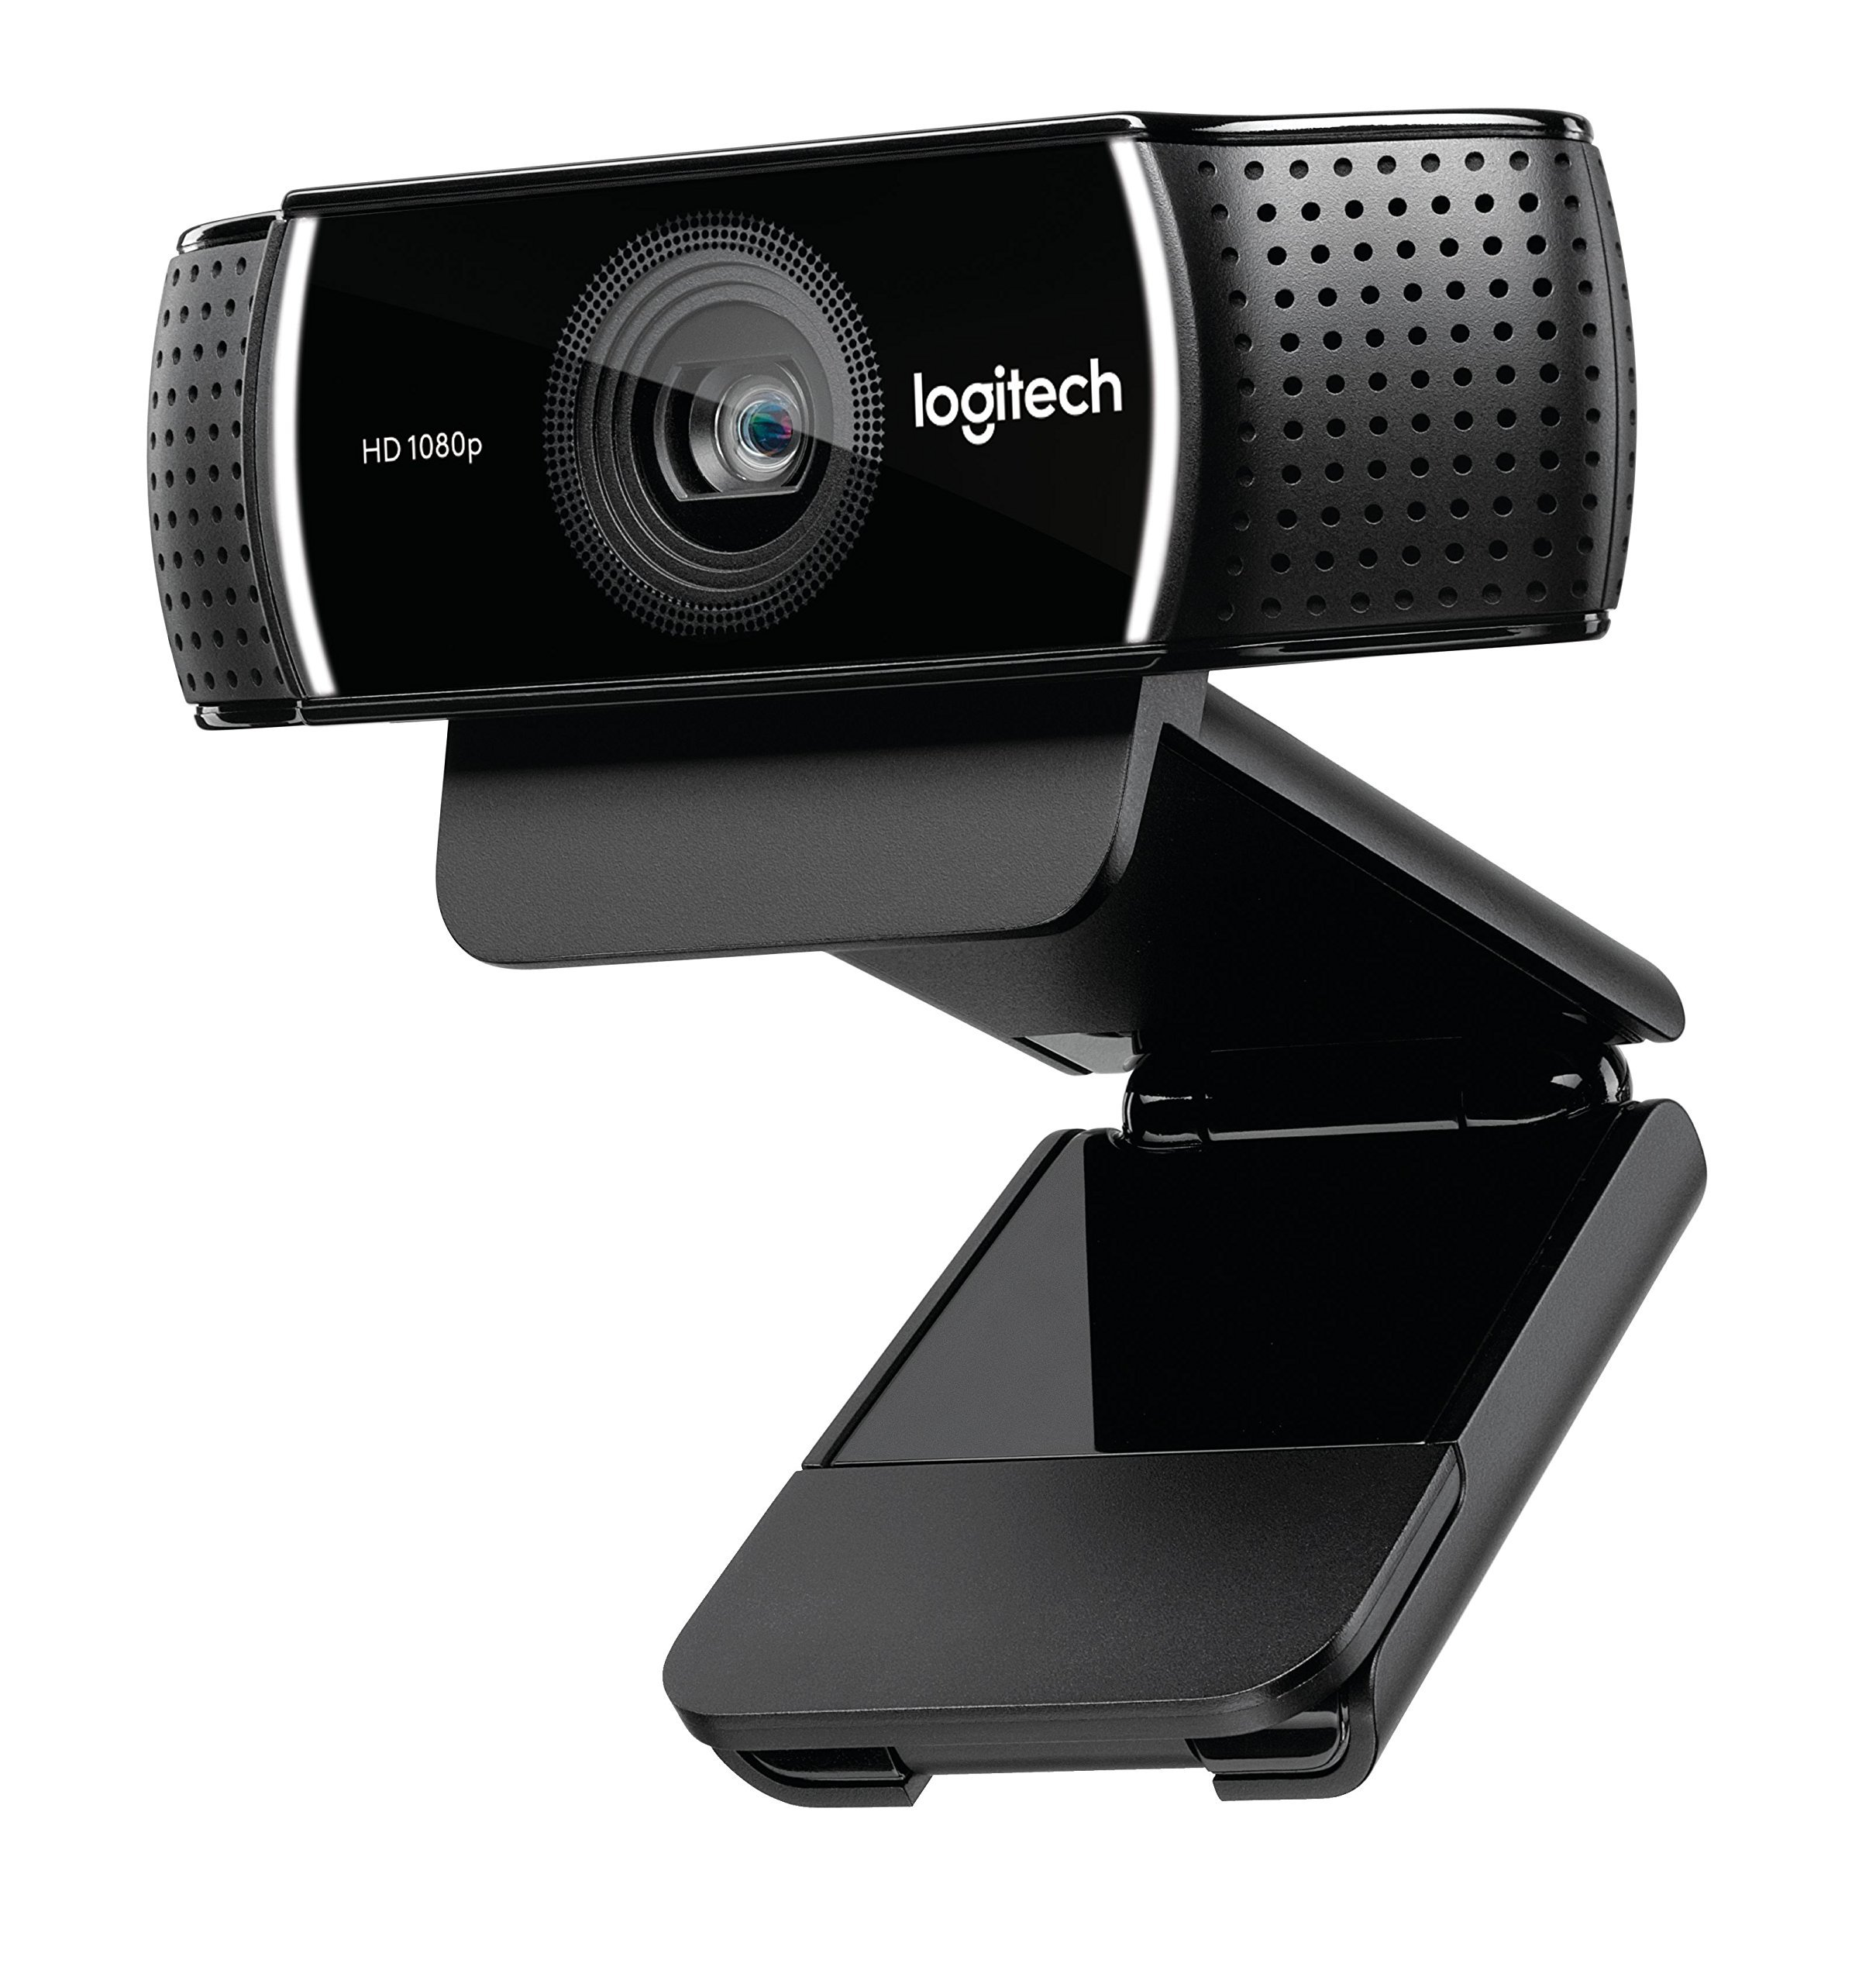 Logitech C922x Pro Stream Webcam – Full 1080p HD Camera – Background Replacement Technology for YouTube or Twitch Streaming (Certified Refurbished)